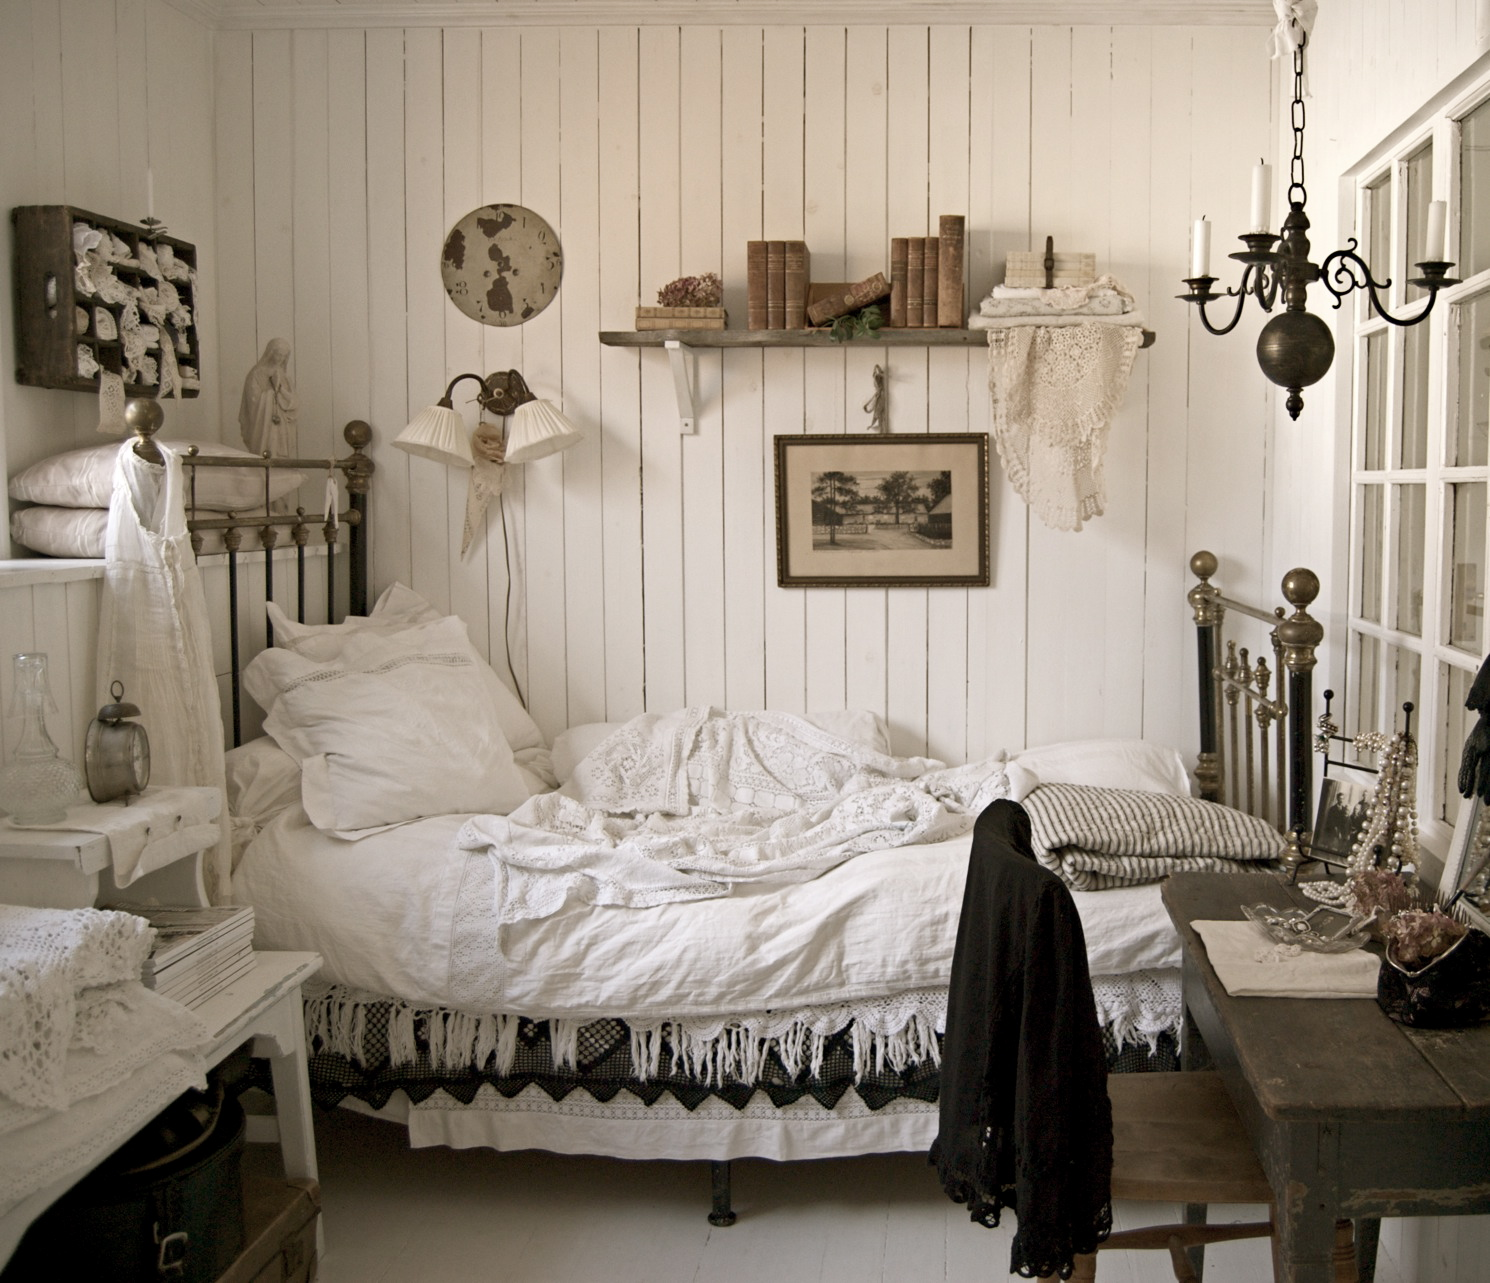 Rustic Black And White Bedroom Bedroom Quotes For Walls Tumblr Three Bed Bedroom Beautiful Pink Bedrooms For Girls